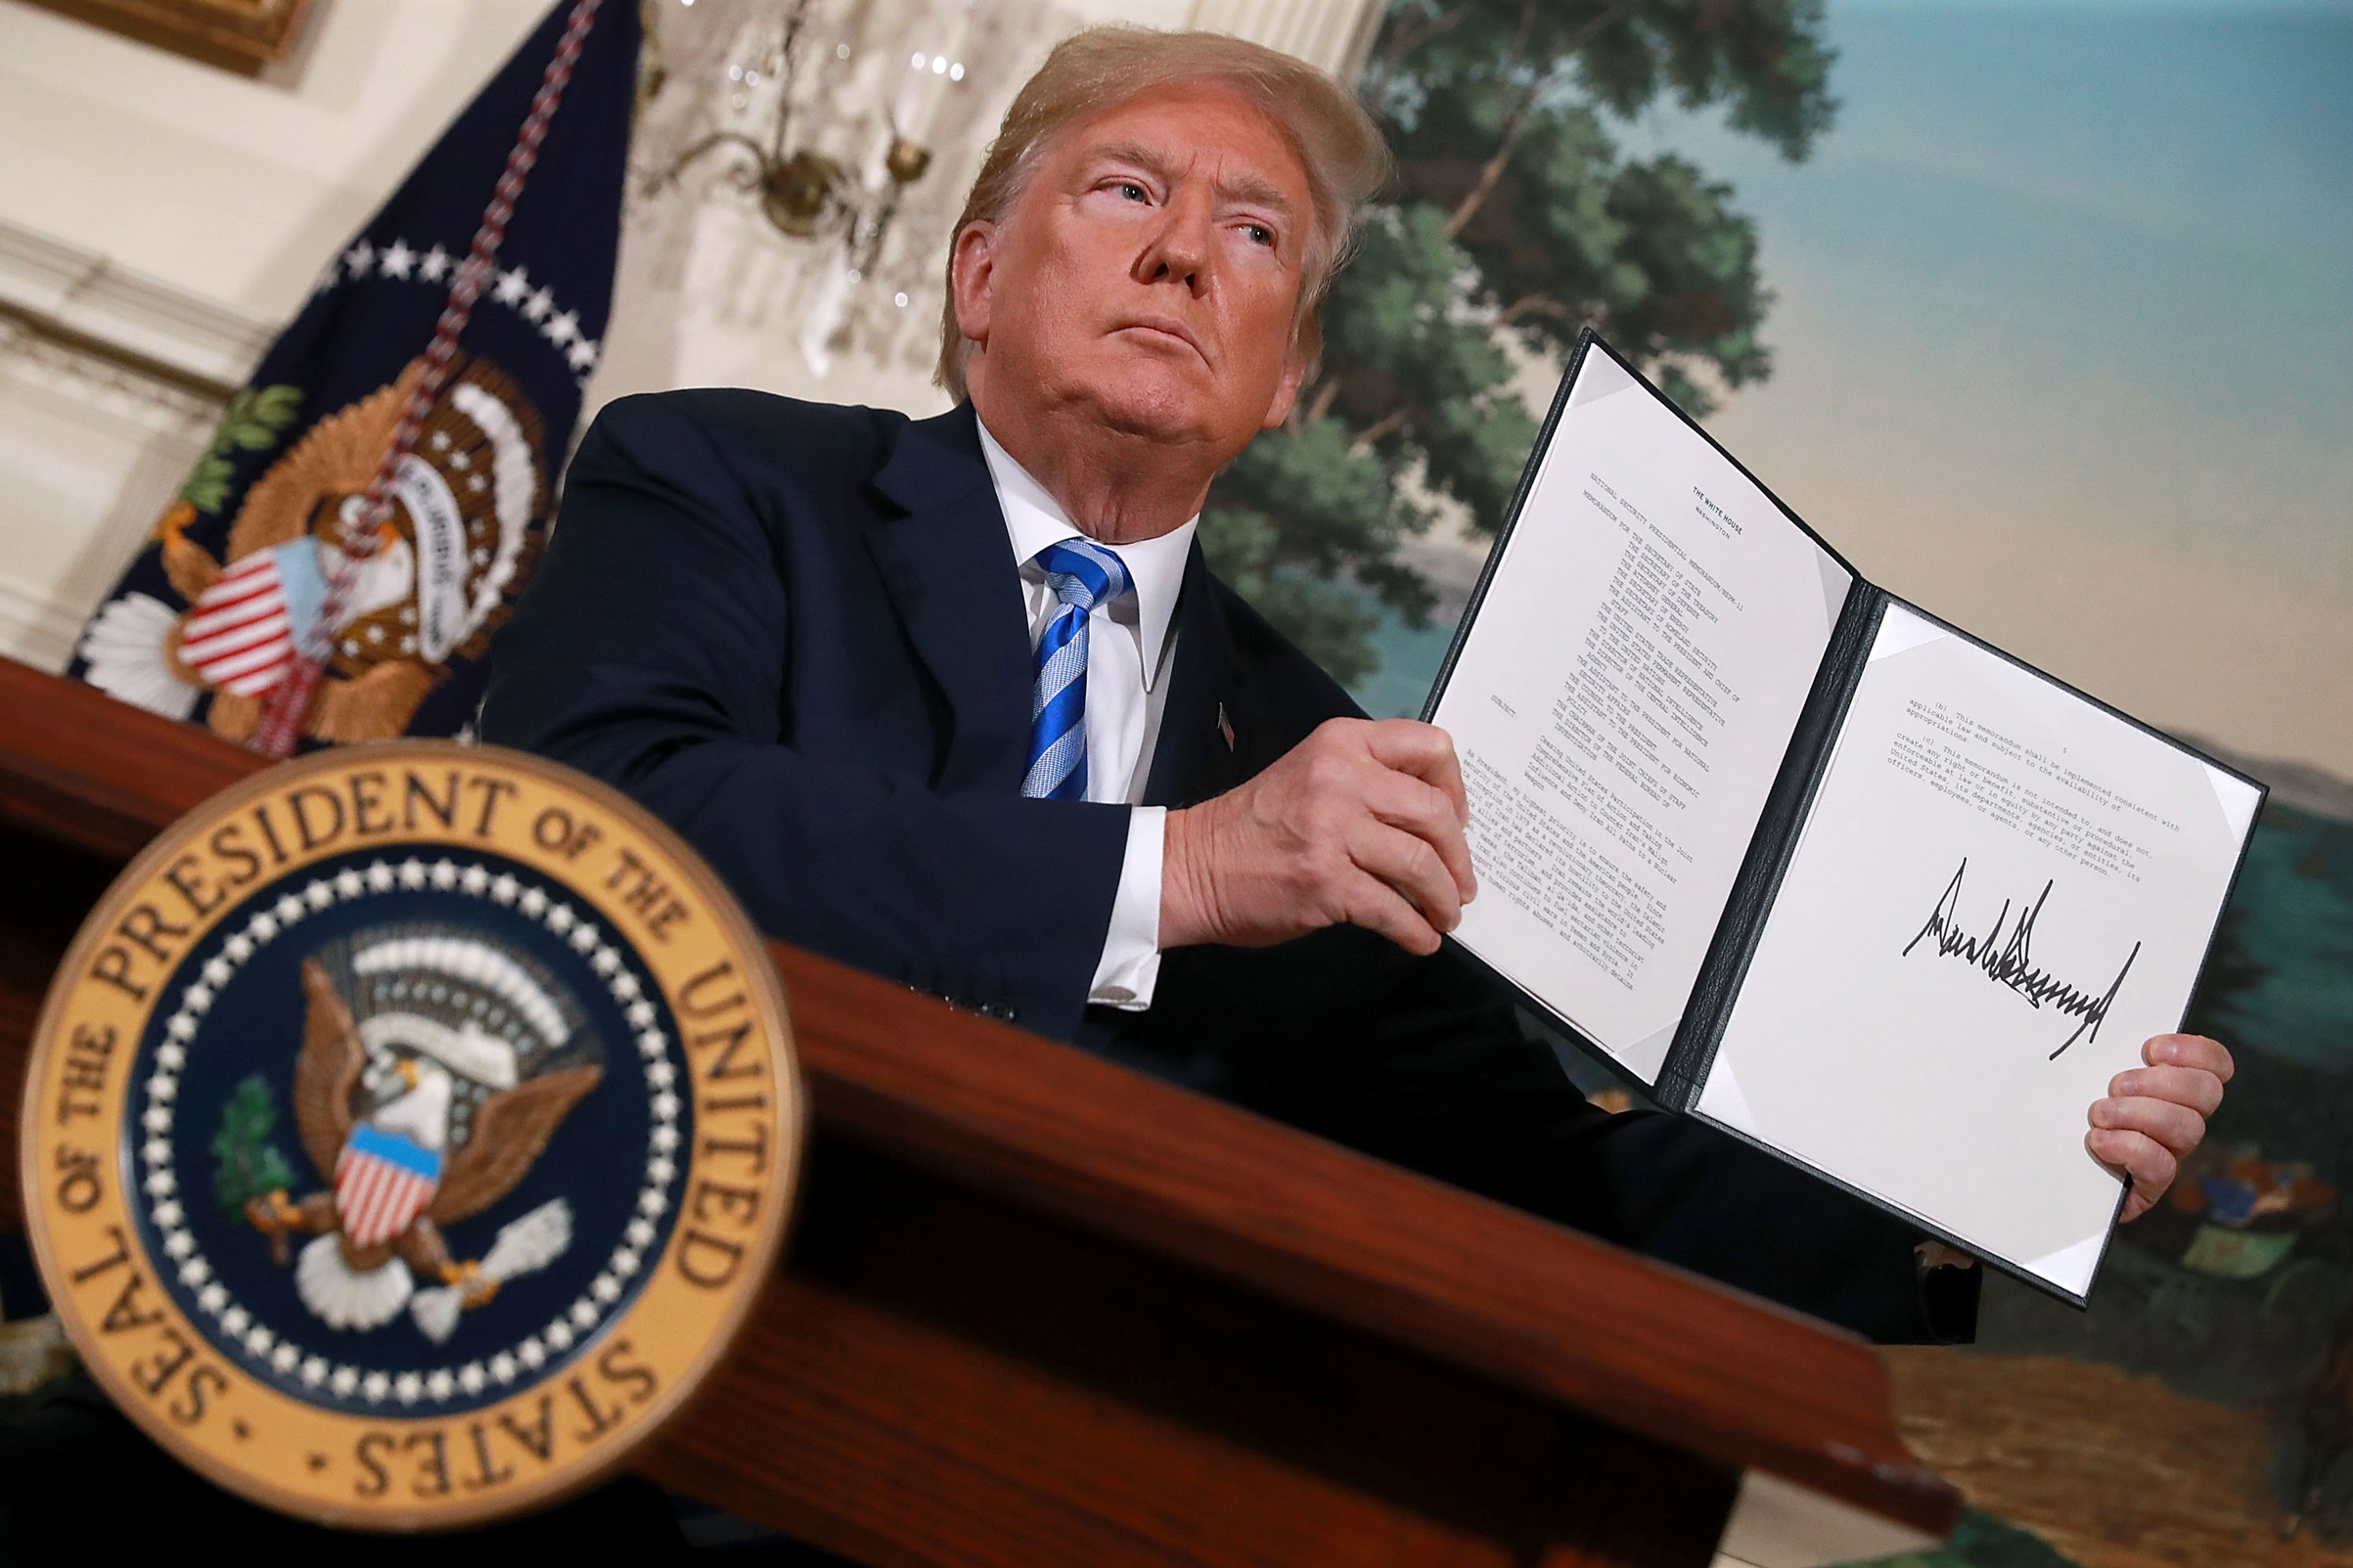 President Donald Trump holds up a memorandum that reinstates sanctions on Iran after he announced his decision to withdraw the United States from the 2015 Iran nuclear deal, on May 8, 2018, in Washington, D.C.